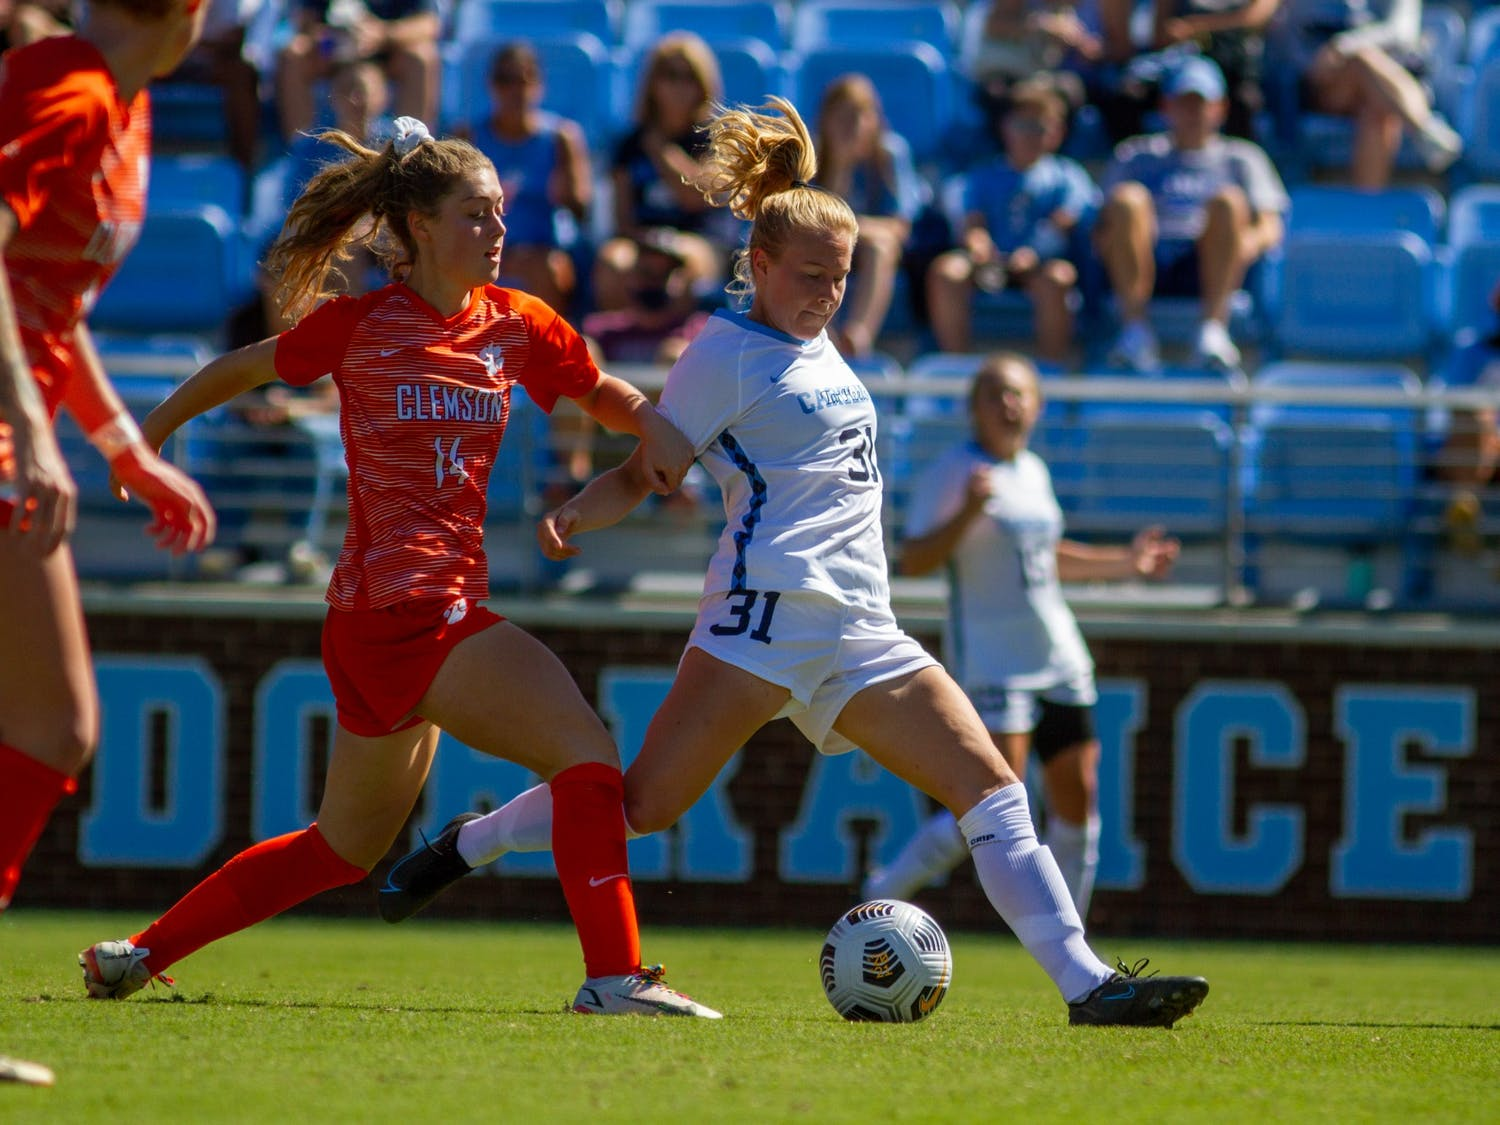 UNC freshman midfielder Annika Huhta (31) maintains possession of the ball the ball during a home game against Clemson at Dorrance Field on Sept. 26. UNC won 3-0.